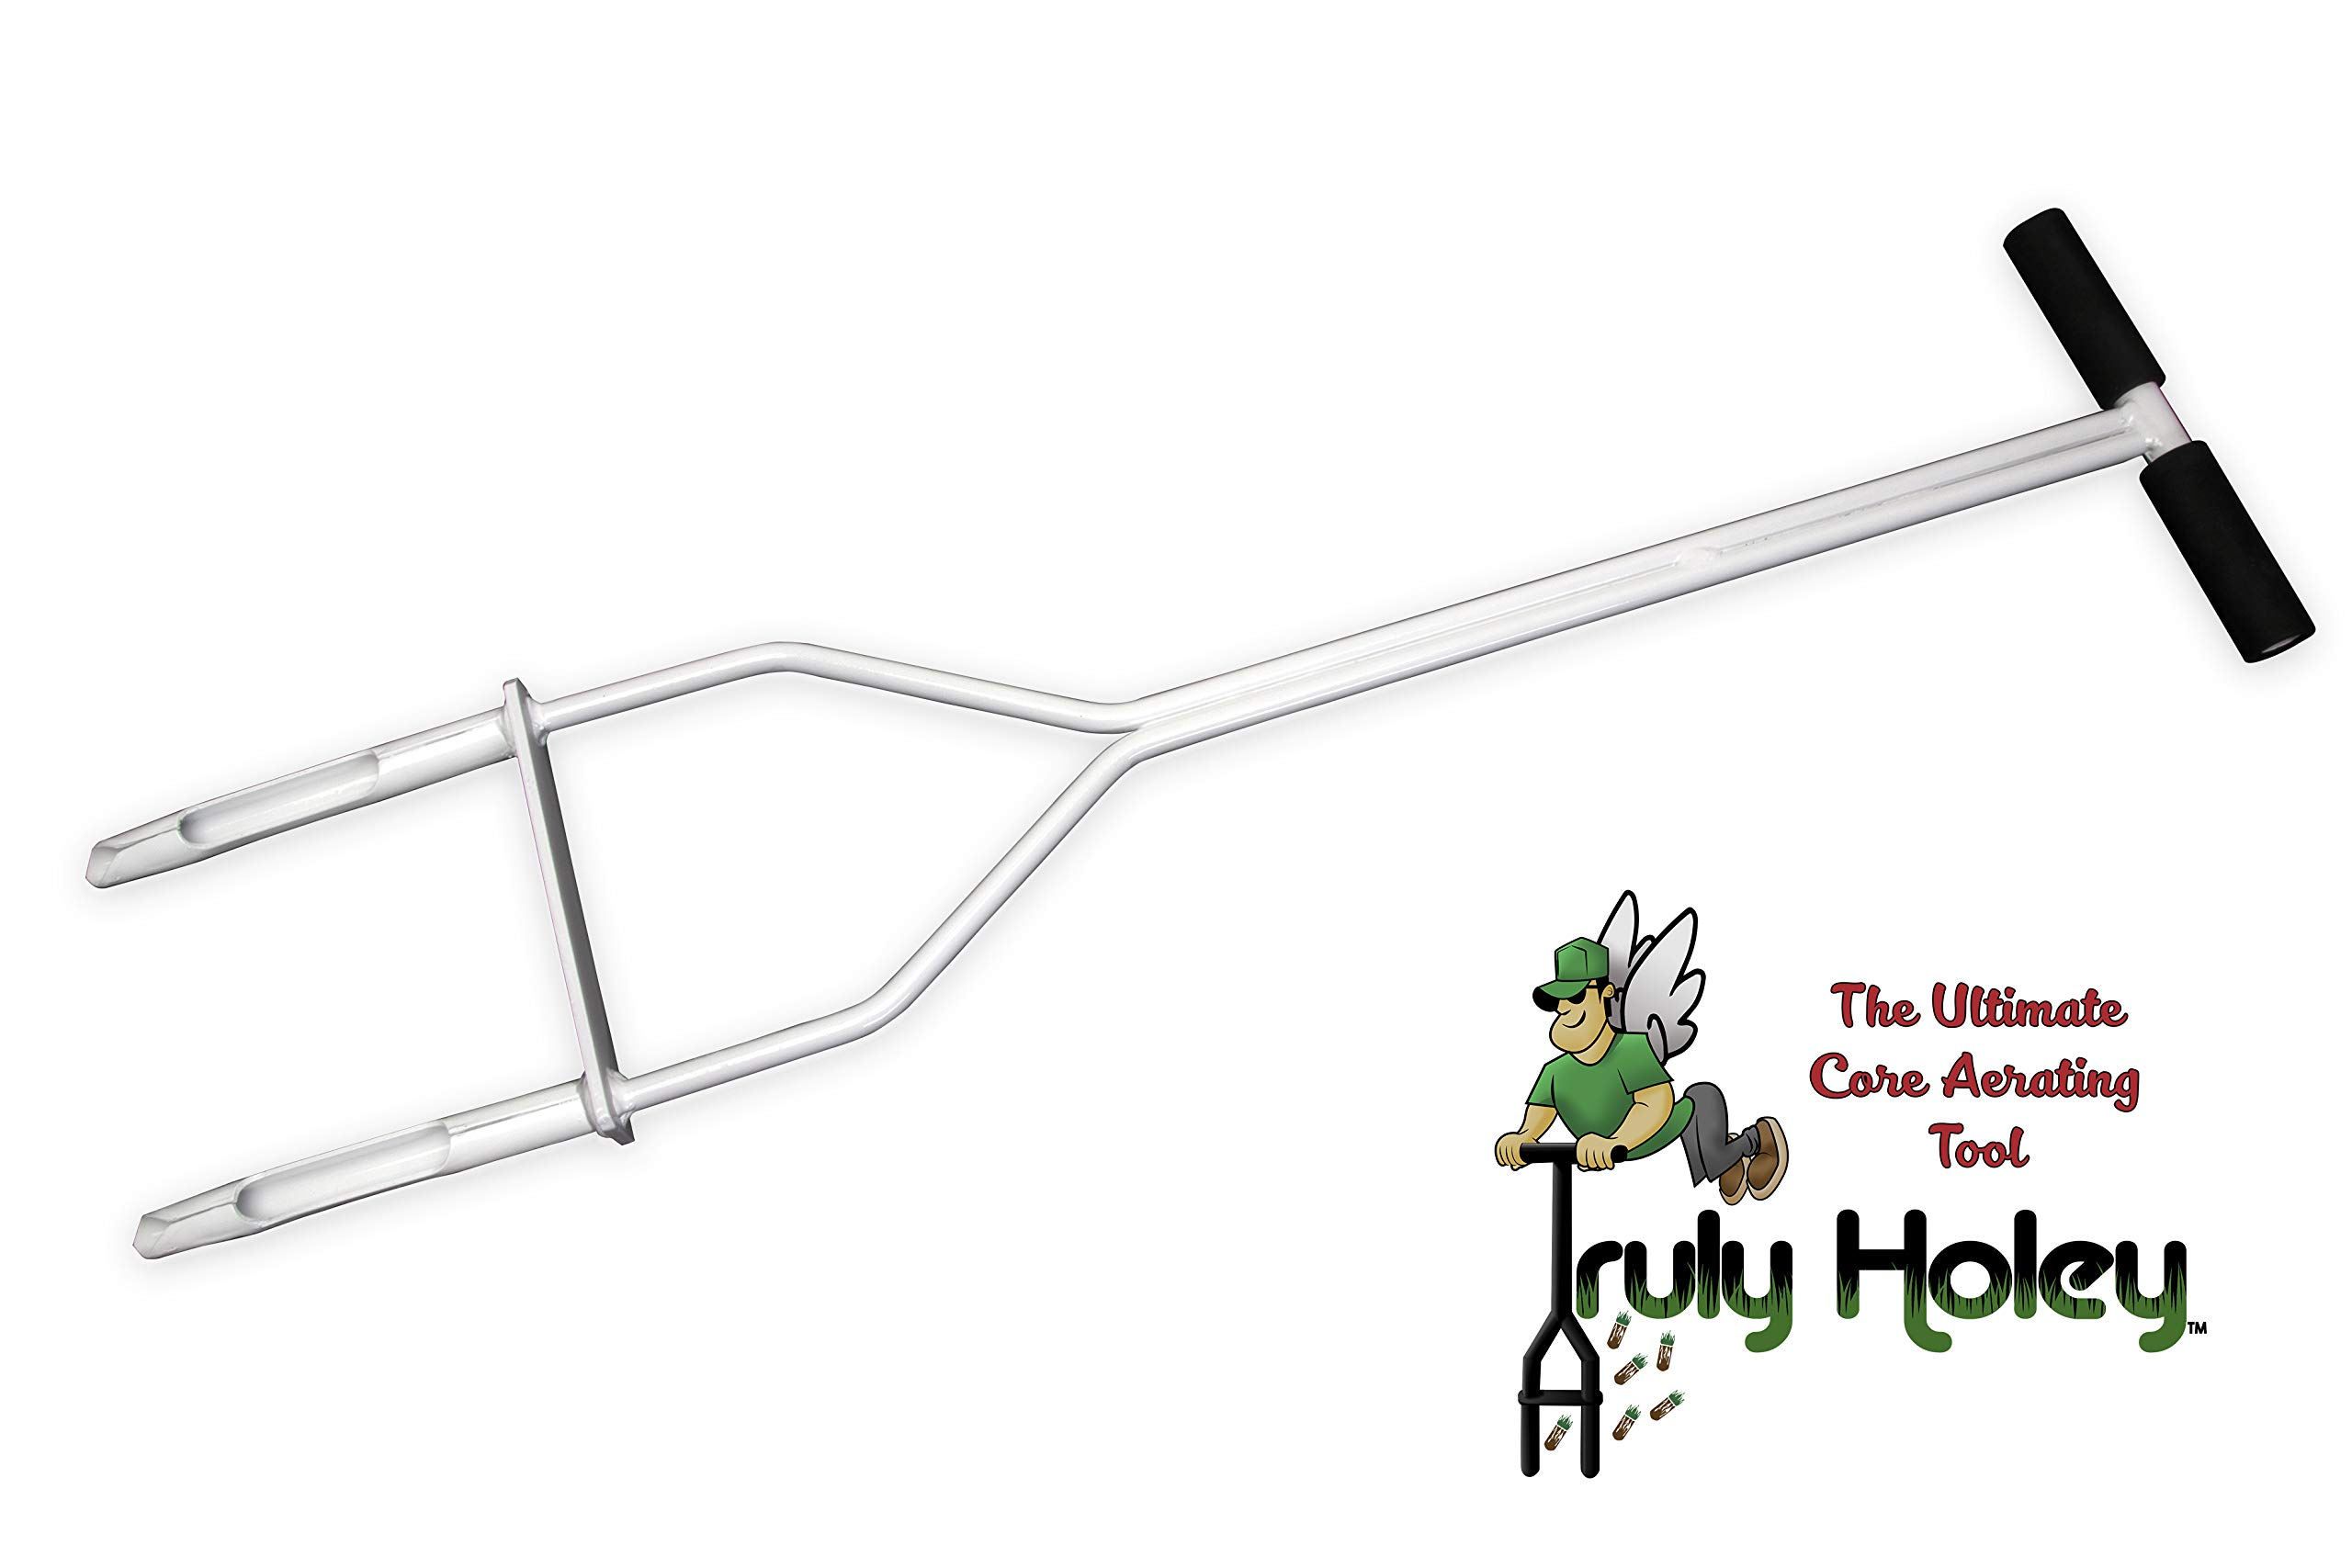 Truly Holey Manual Lawn Aerator Tool - 5 Pounds - Two Prong - Foot Bar - 40 in Height, 7 ½ in Wide by TRULY HOLEY THE ULTIMATE CORE AERATING TOOL